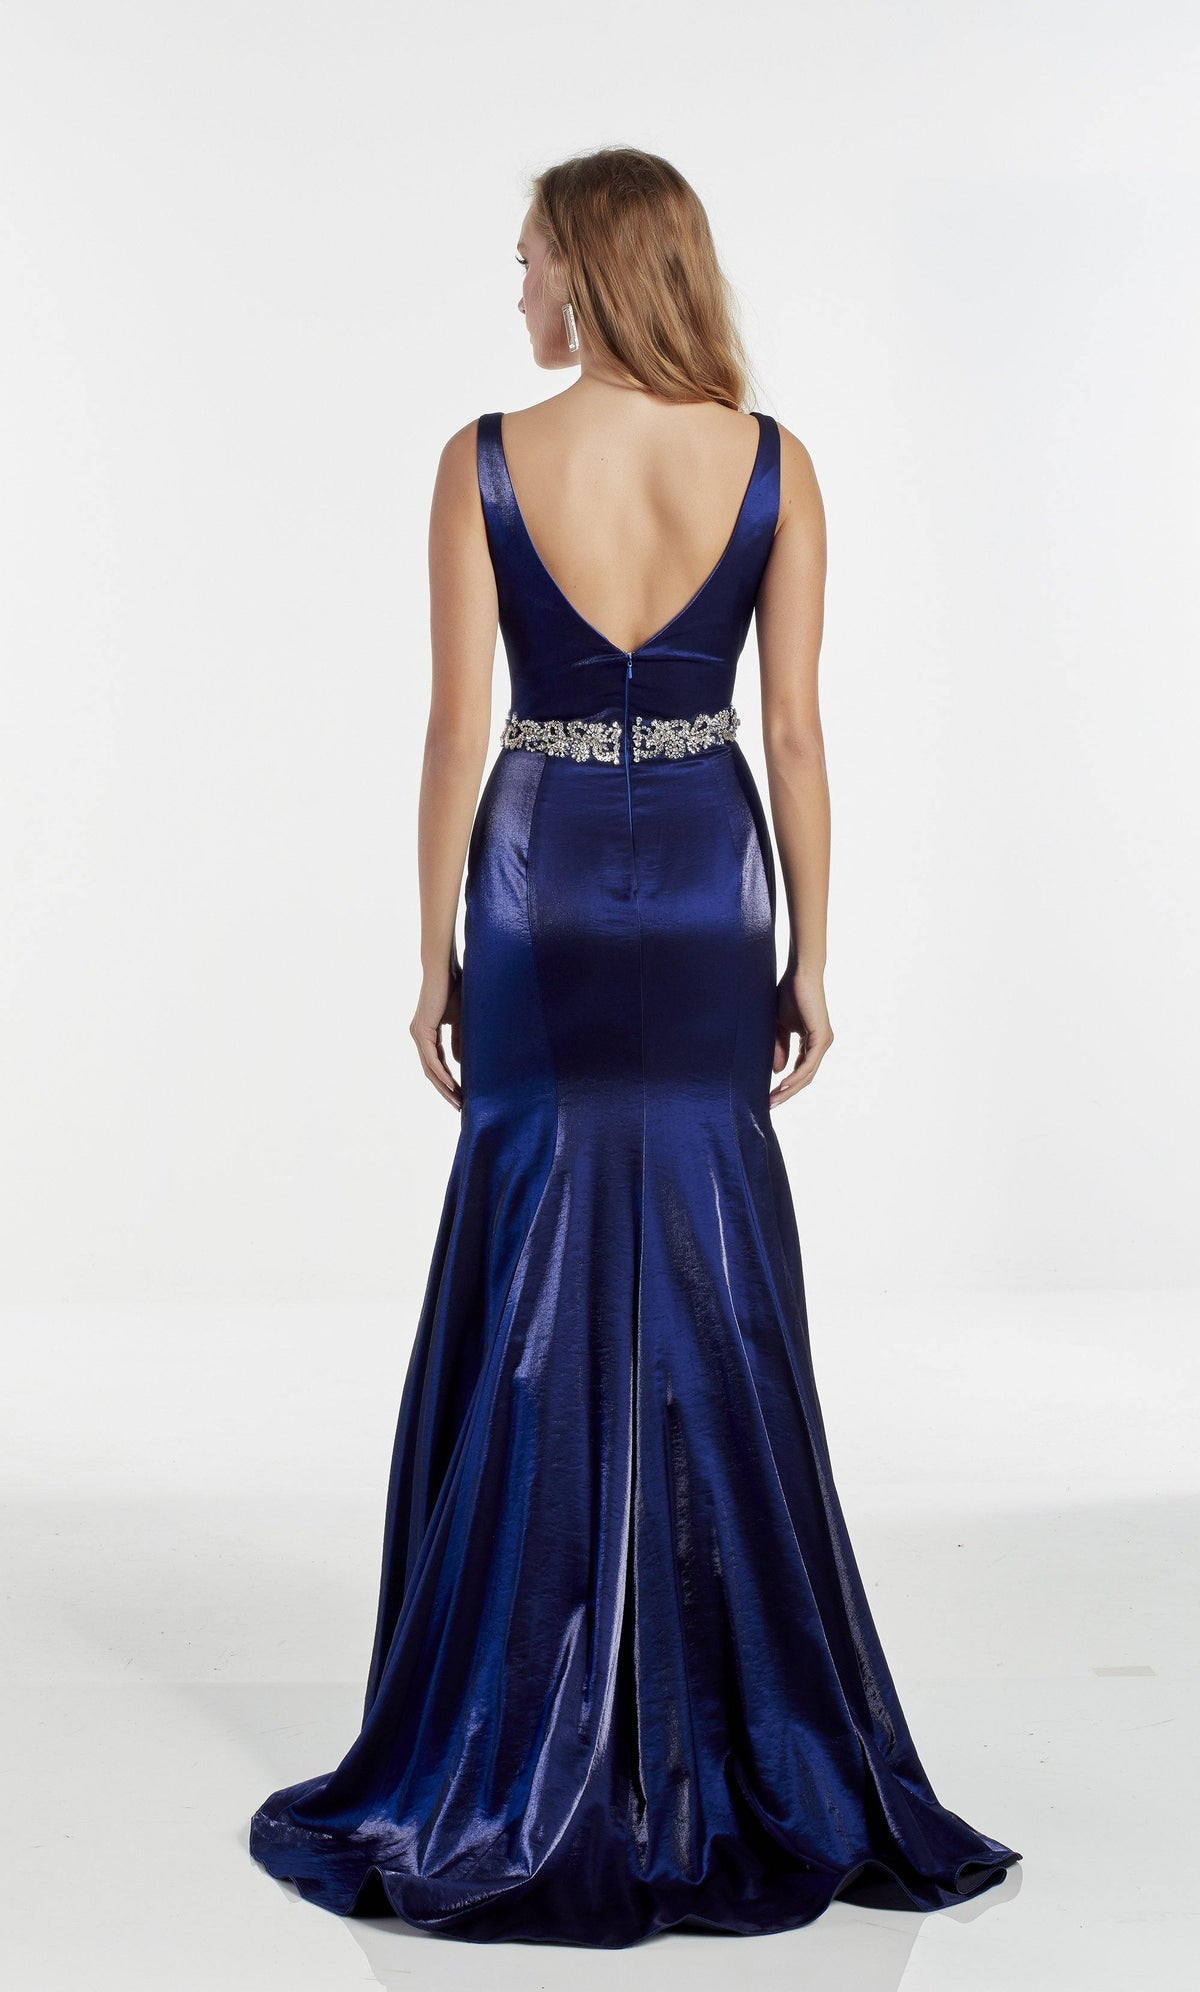 Navy shimmer satin formal dress with a V shaped back and train